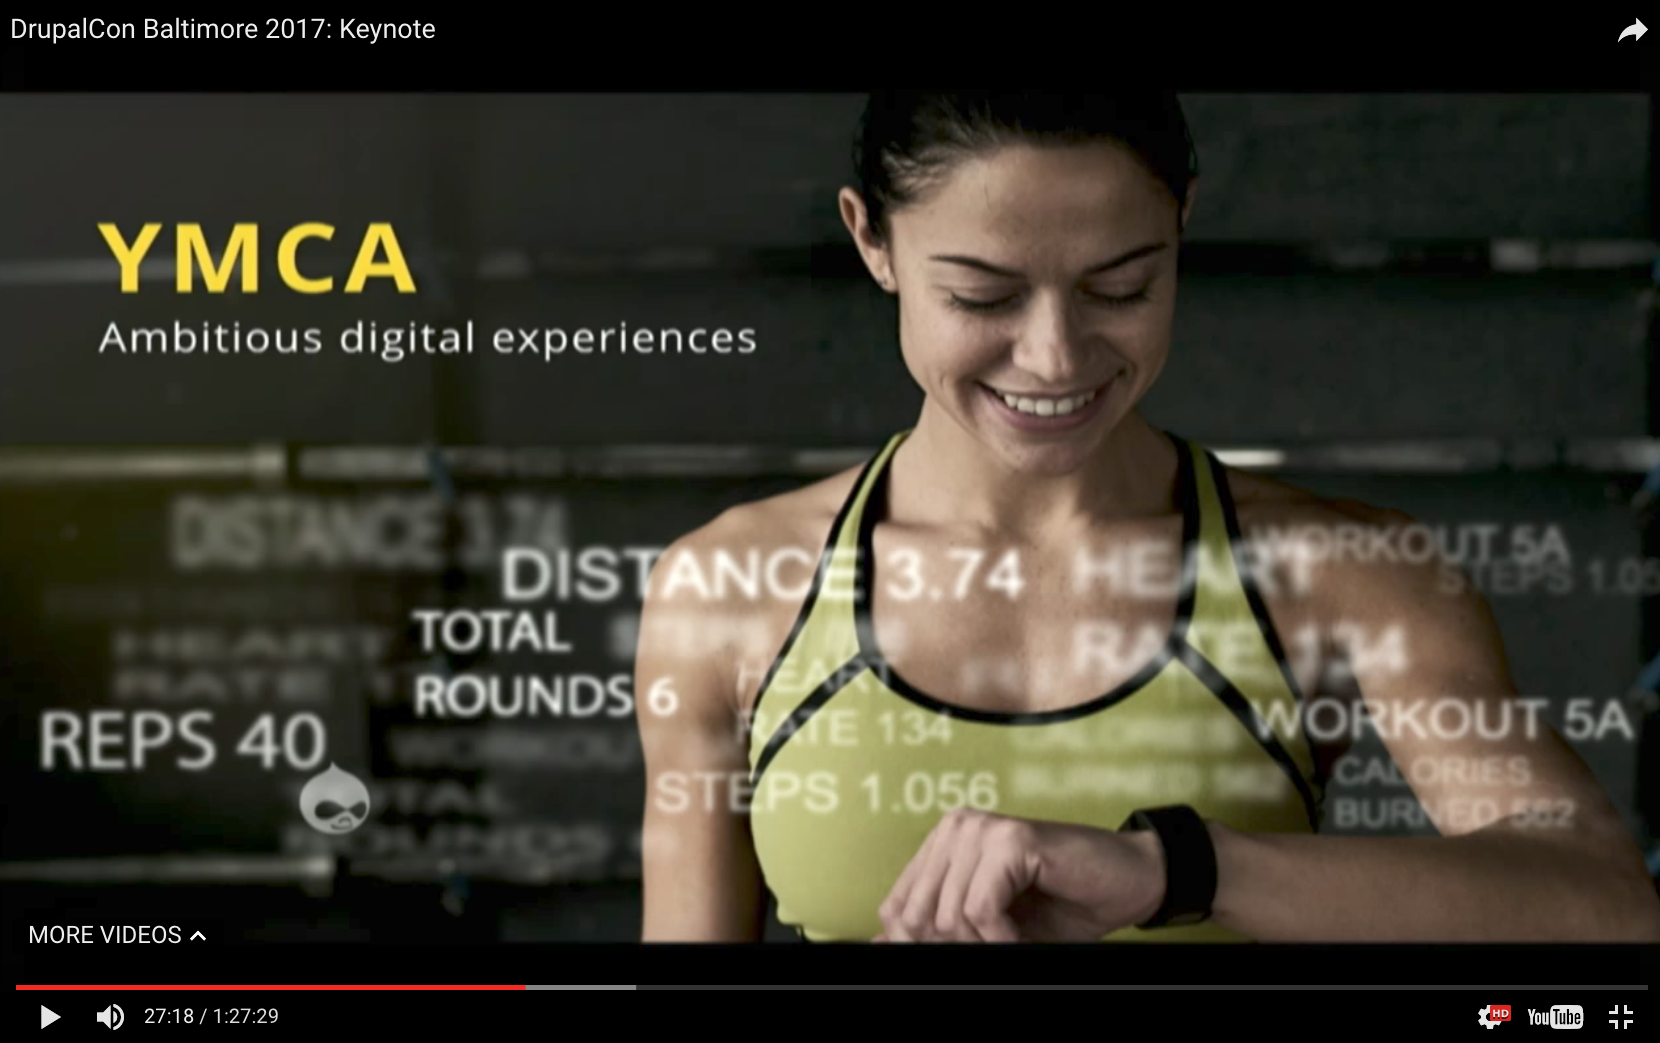 YMCA and Ambitious Digital Experiences